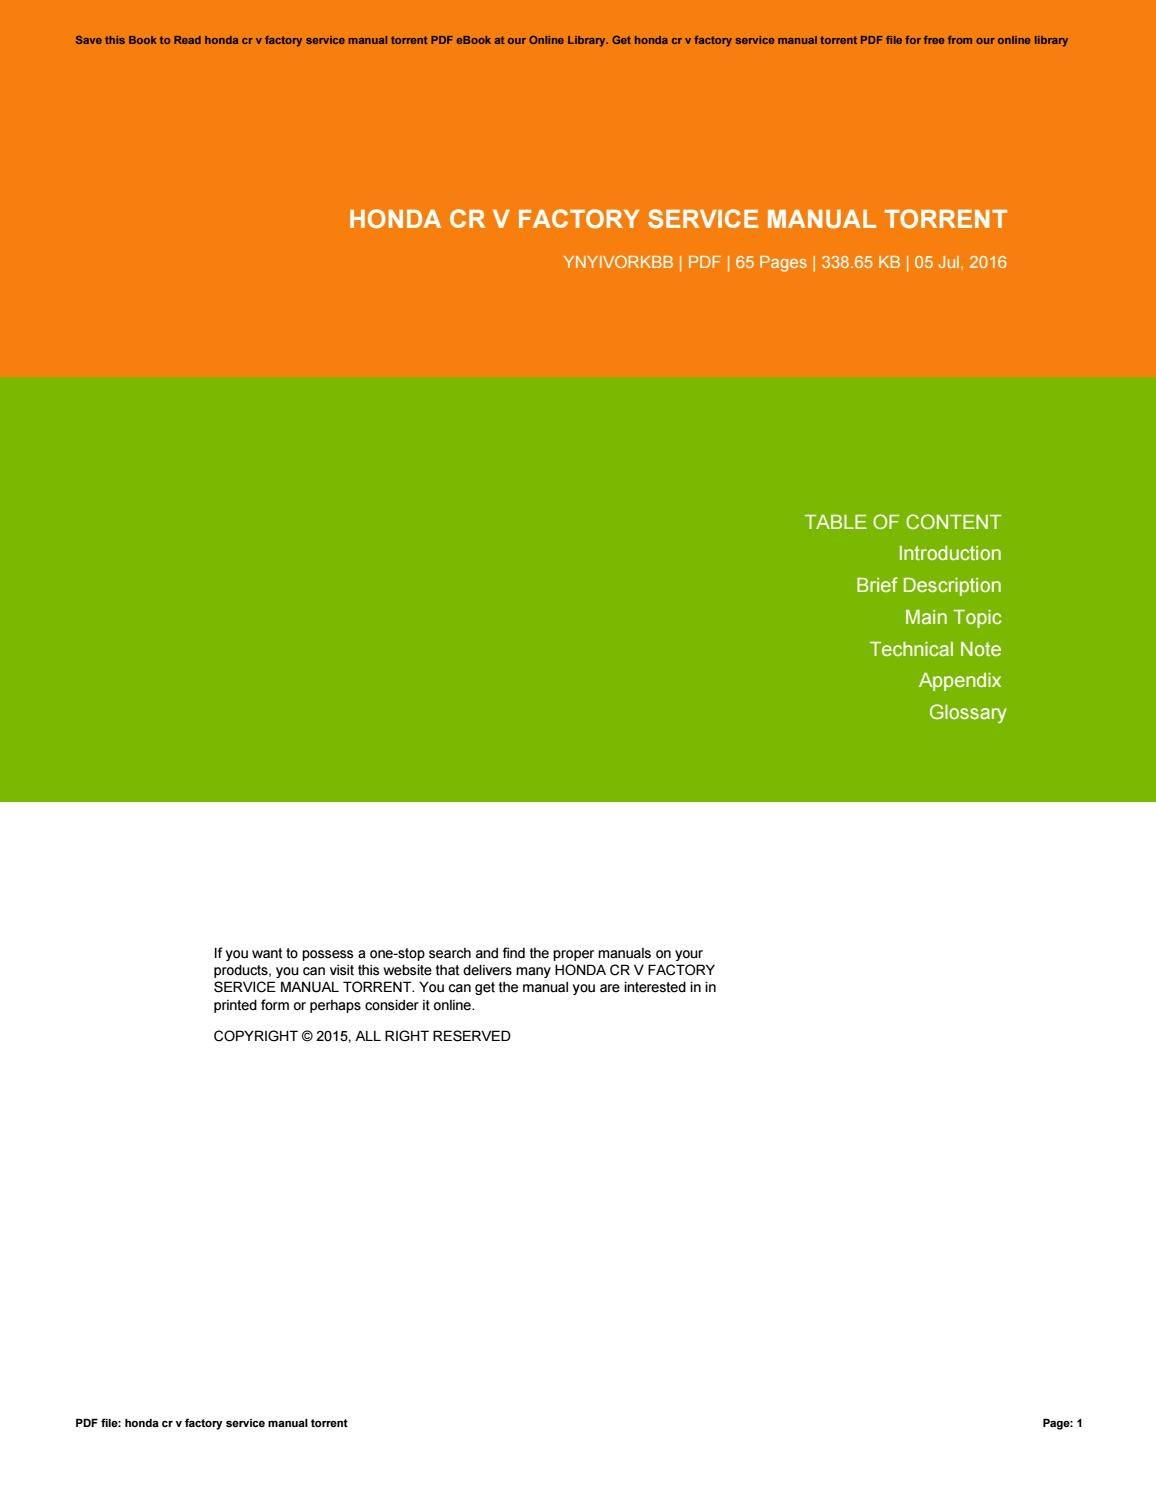 Mnl-8679] fj40 factory service manual torrent | 2019 ebook library.